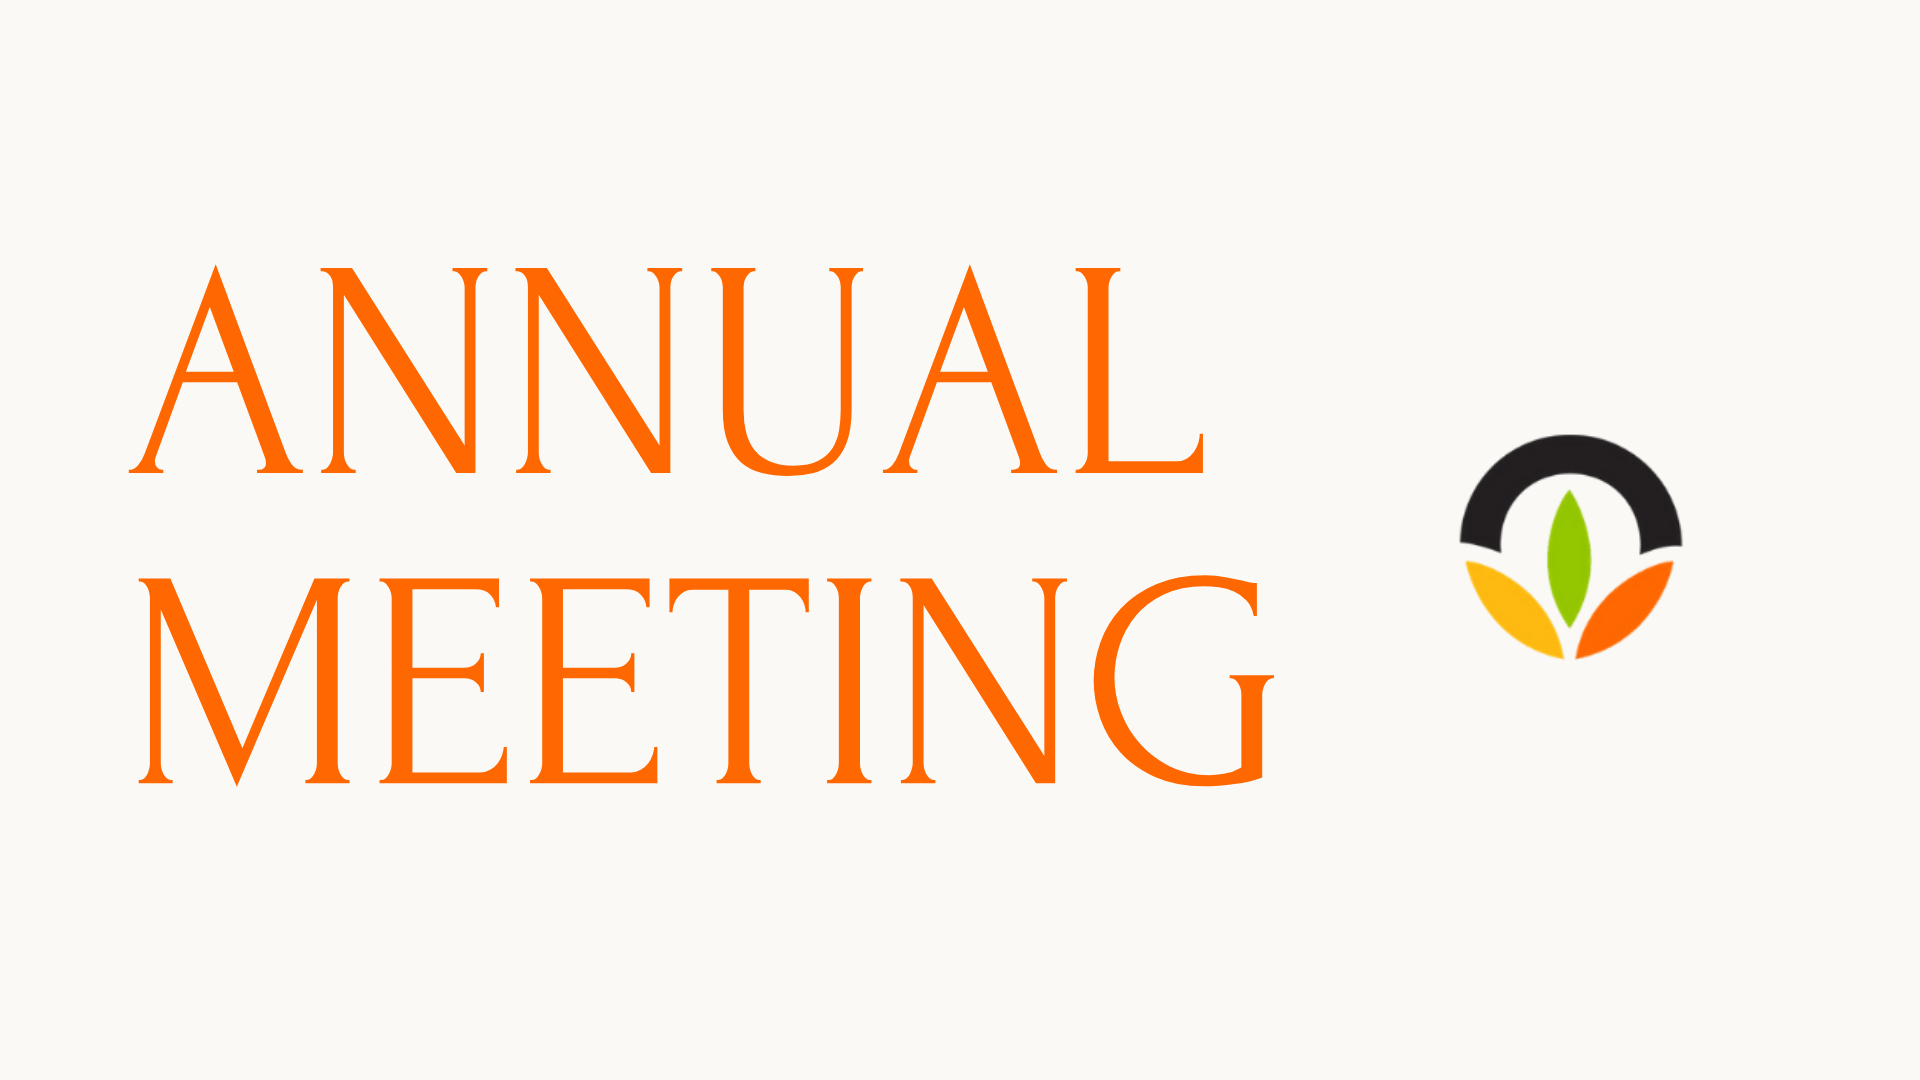 ANNUAL MEETING (1) image